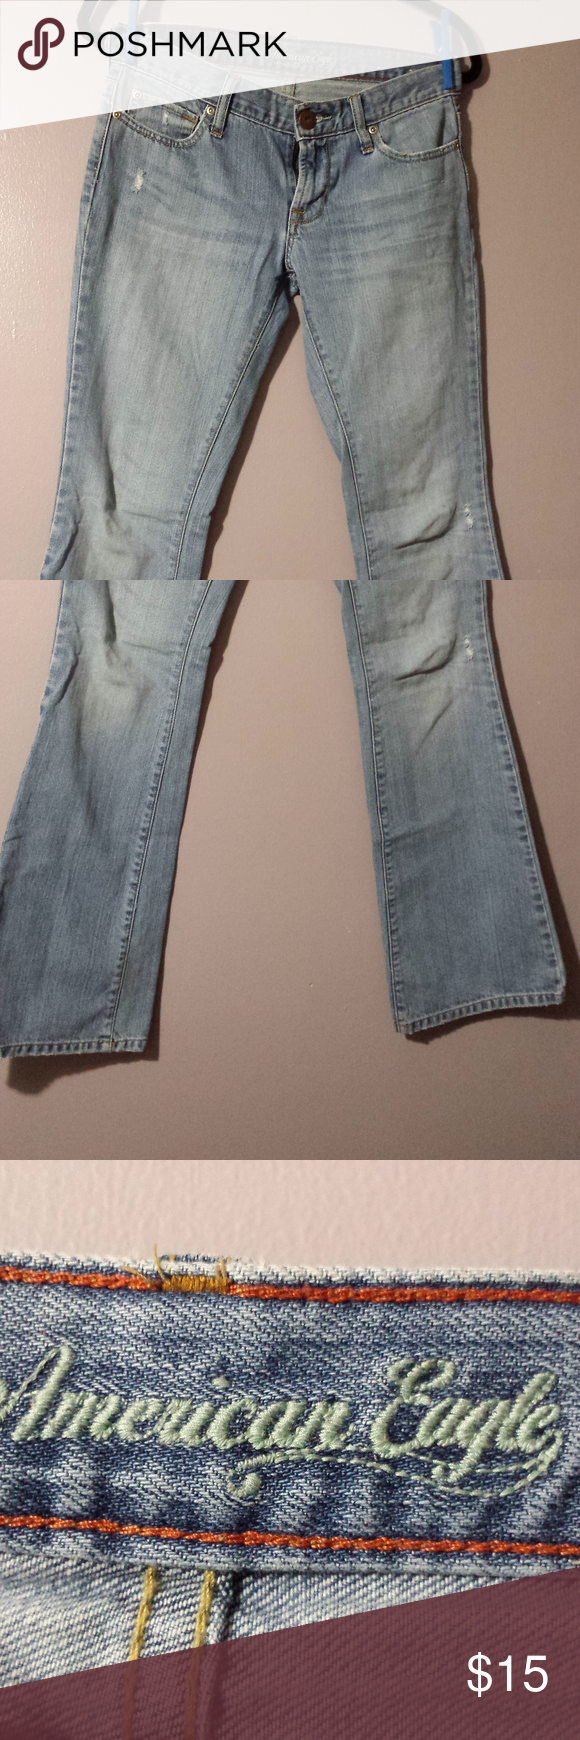 American eagle hipster skinny flare jeans